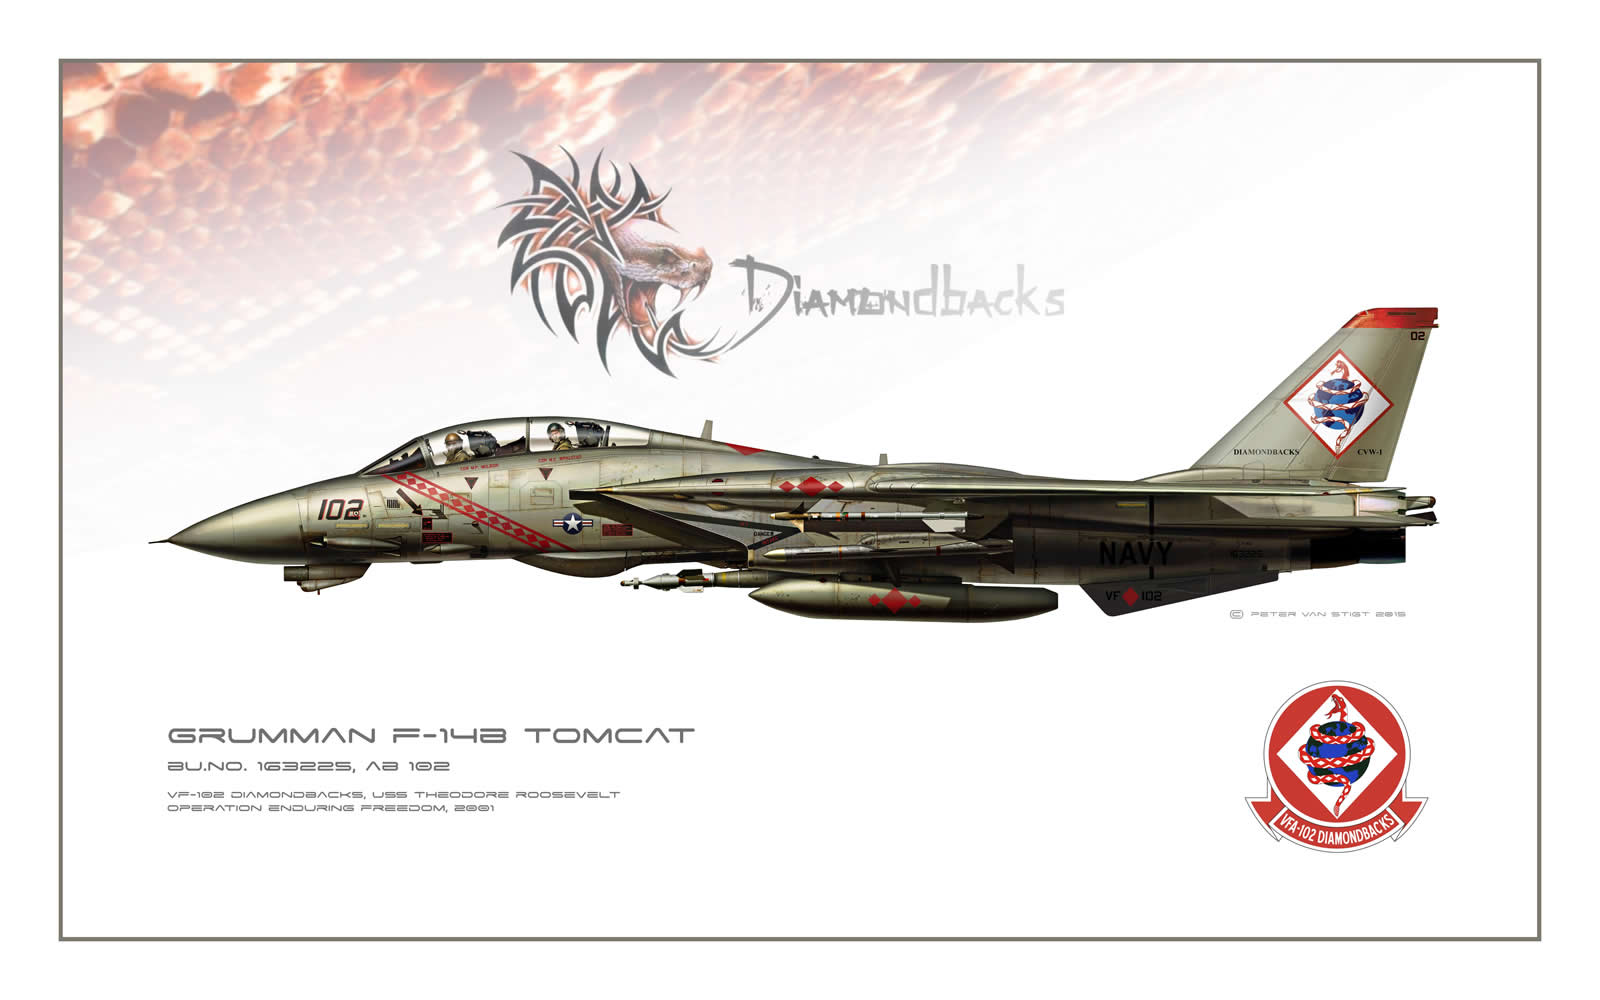 VF-102 Diamondbacks F-14 Tomcat Profile